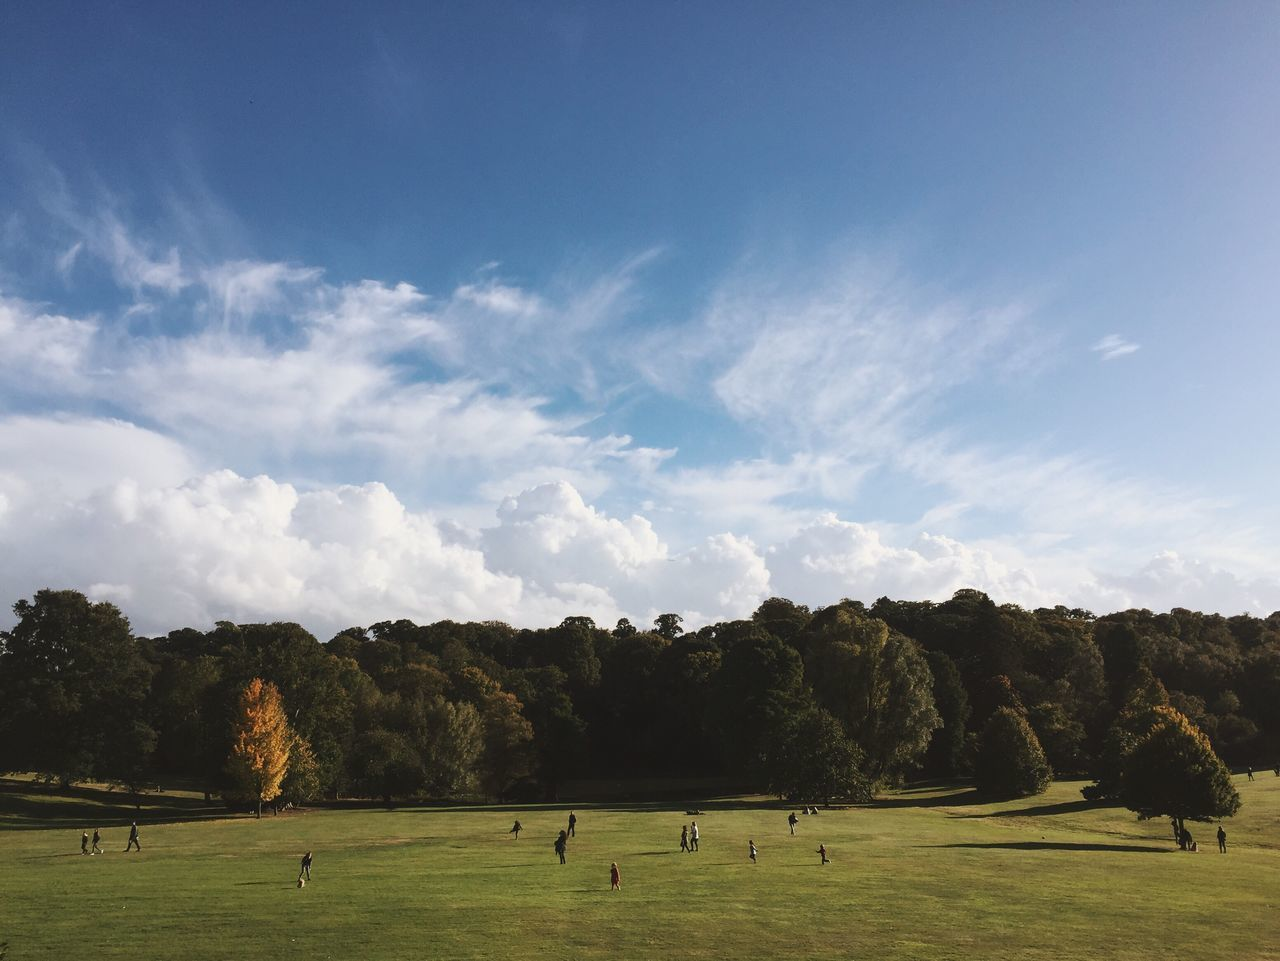 Kenwood House grounds at Hampstead Heath. Grass Tree Nature Landscape Green Color Cloud - Sky Sky Domestic Animals Outdoors Real People Animal Themes Beauty In Nature Day Grass Hampstead Heath London Autumn Many People Weekend Activities big Sky